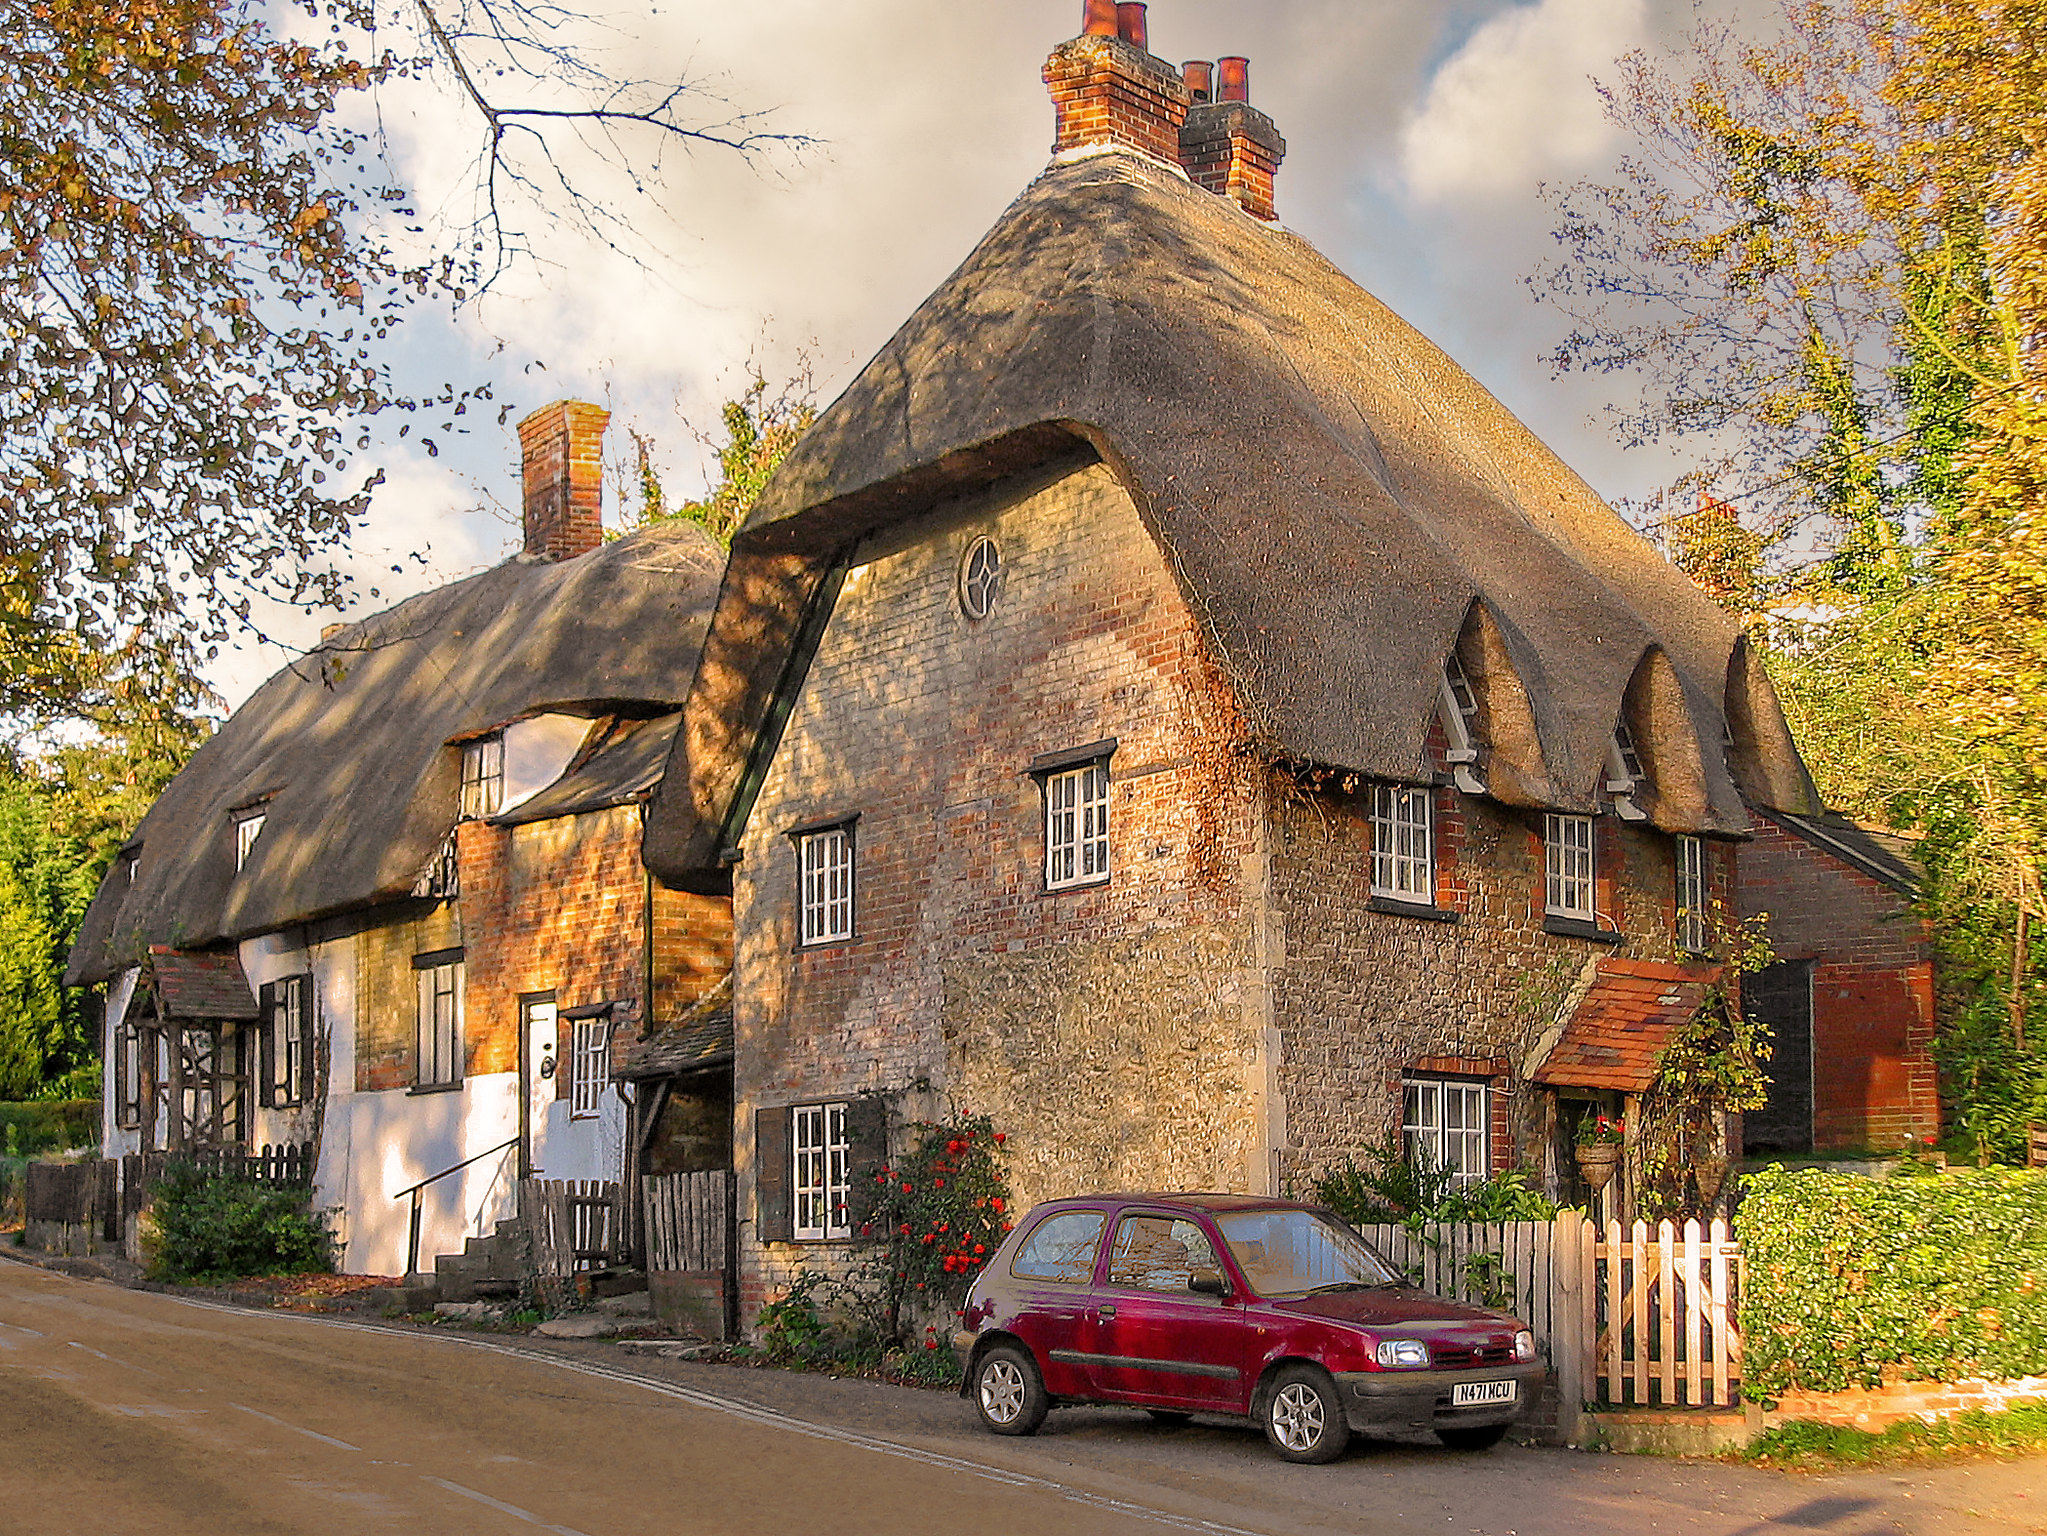 Cottages in the Thames-side village of Clifton Hampden, Oxfordshire by Andrew S Brown.jpg